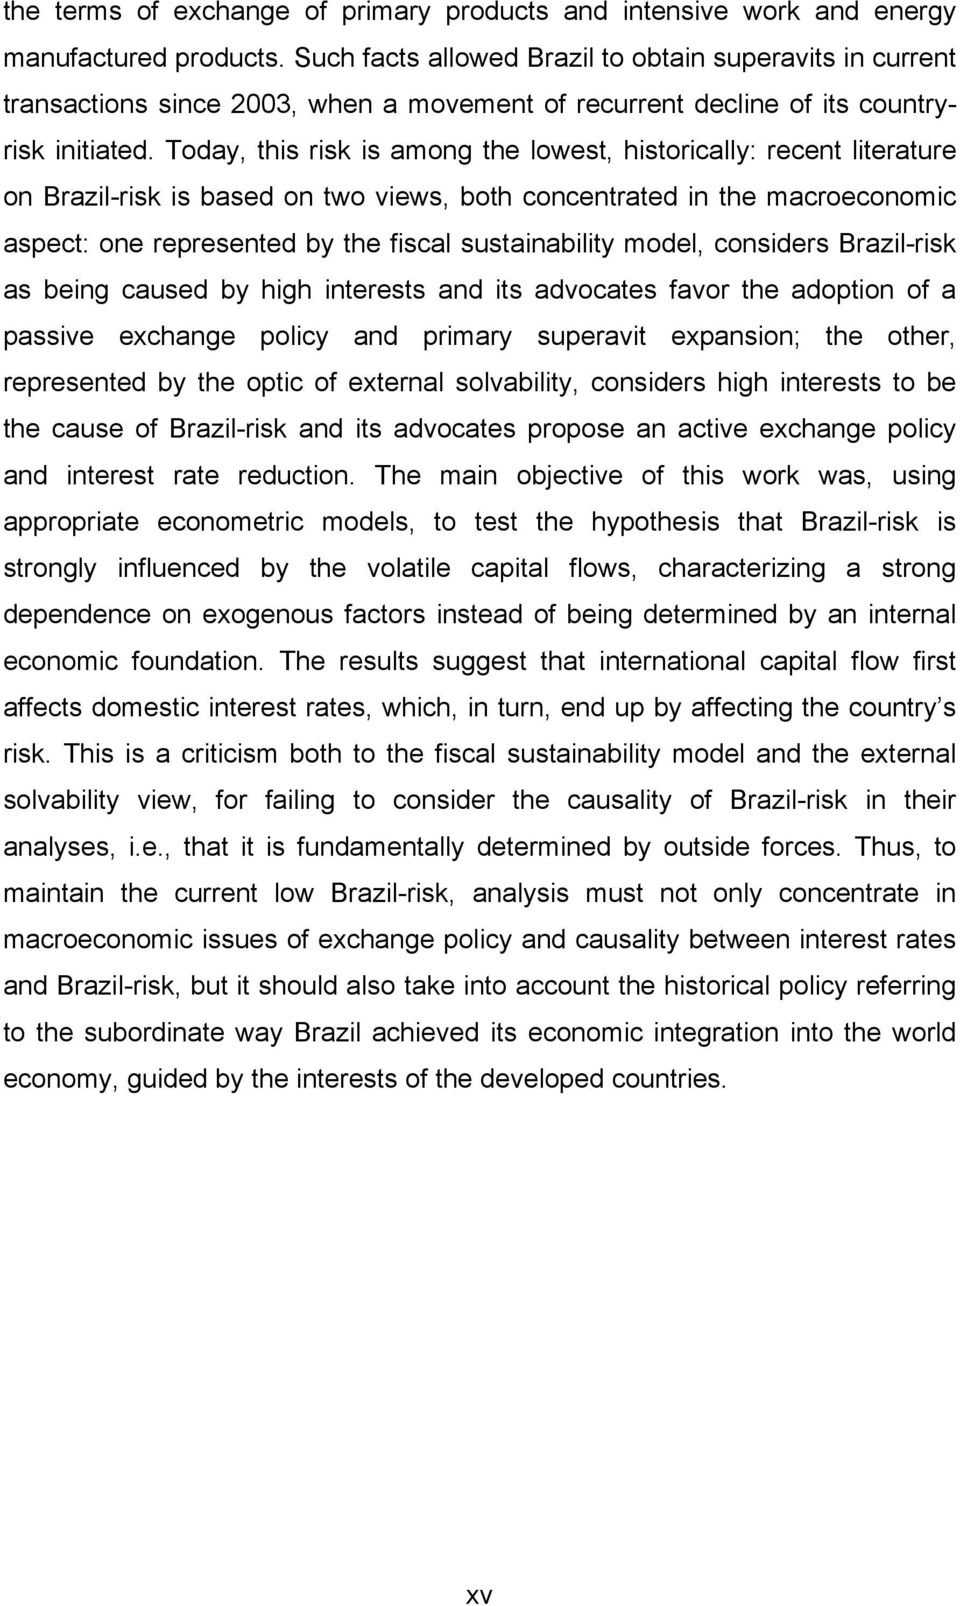 Today, this risk is among the lowest, historically: recent literature on Brazil-risk is based on two views, both concentrated in the macroeconomic aspect: one represented by the fiscal sustainability